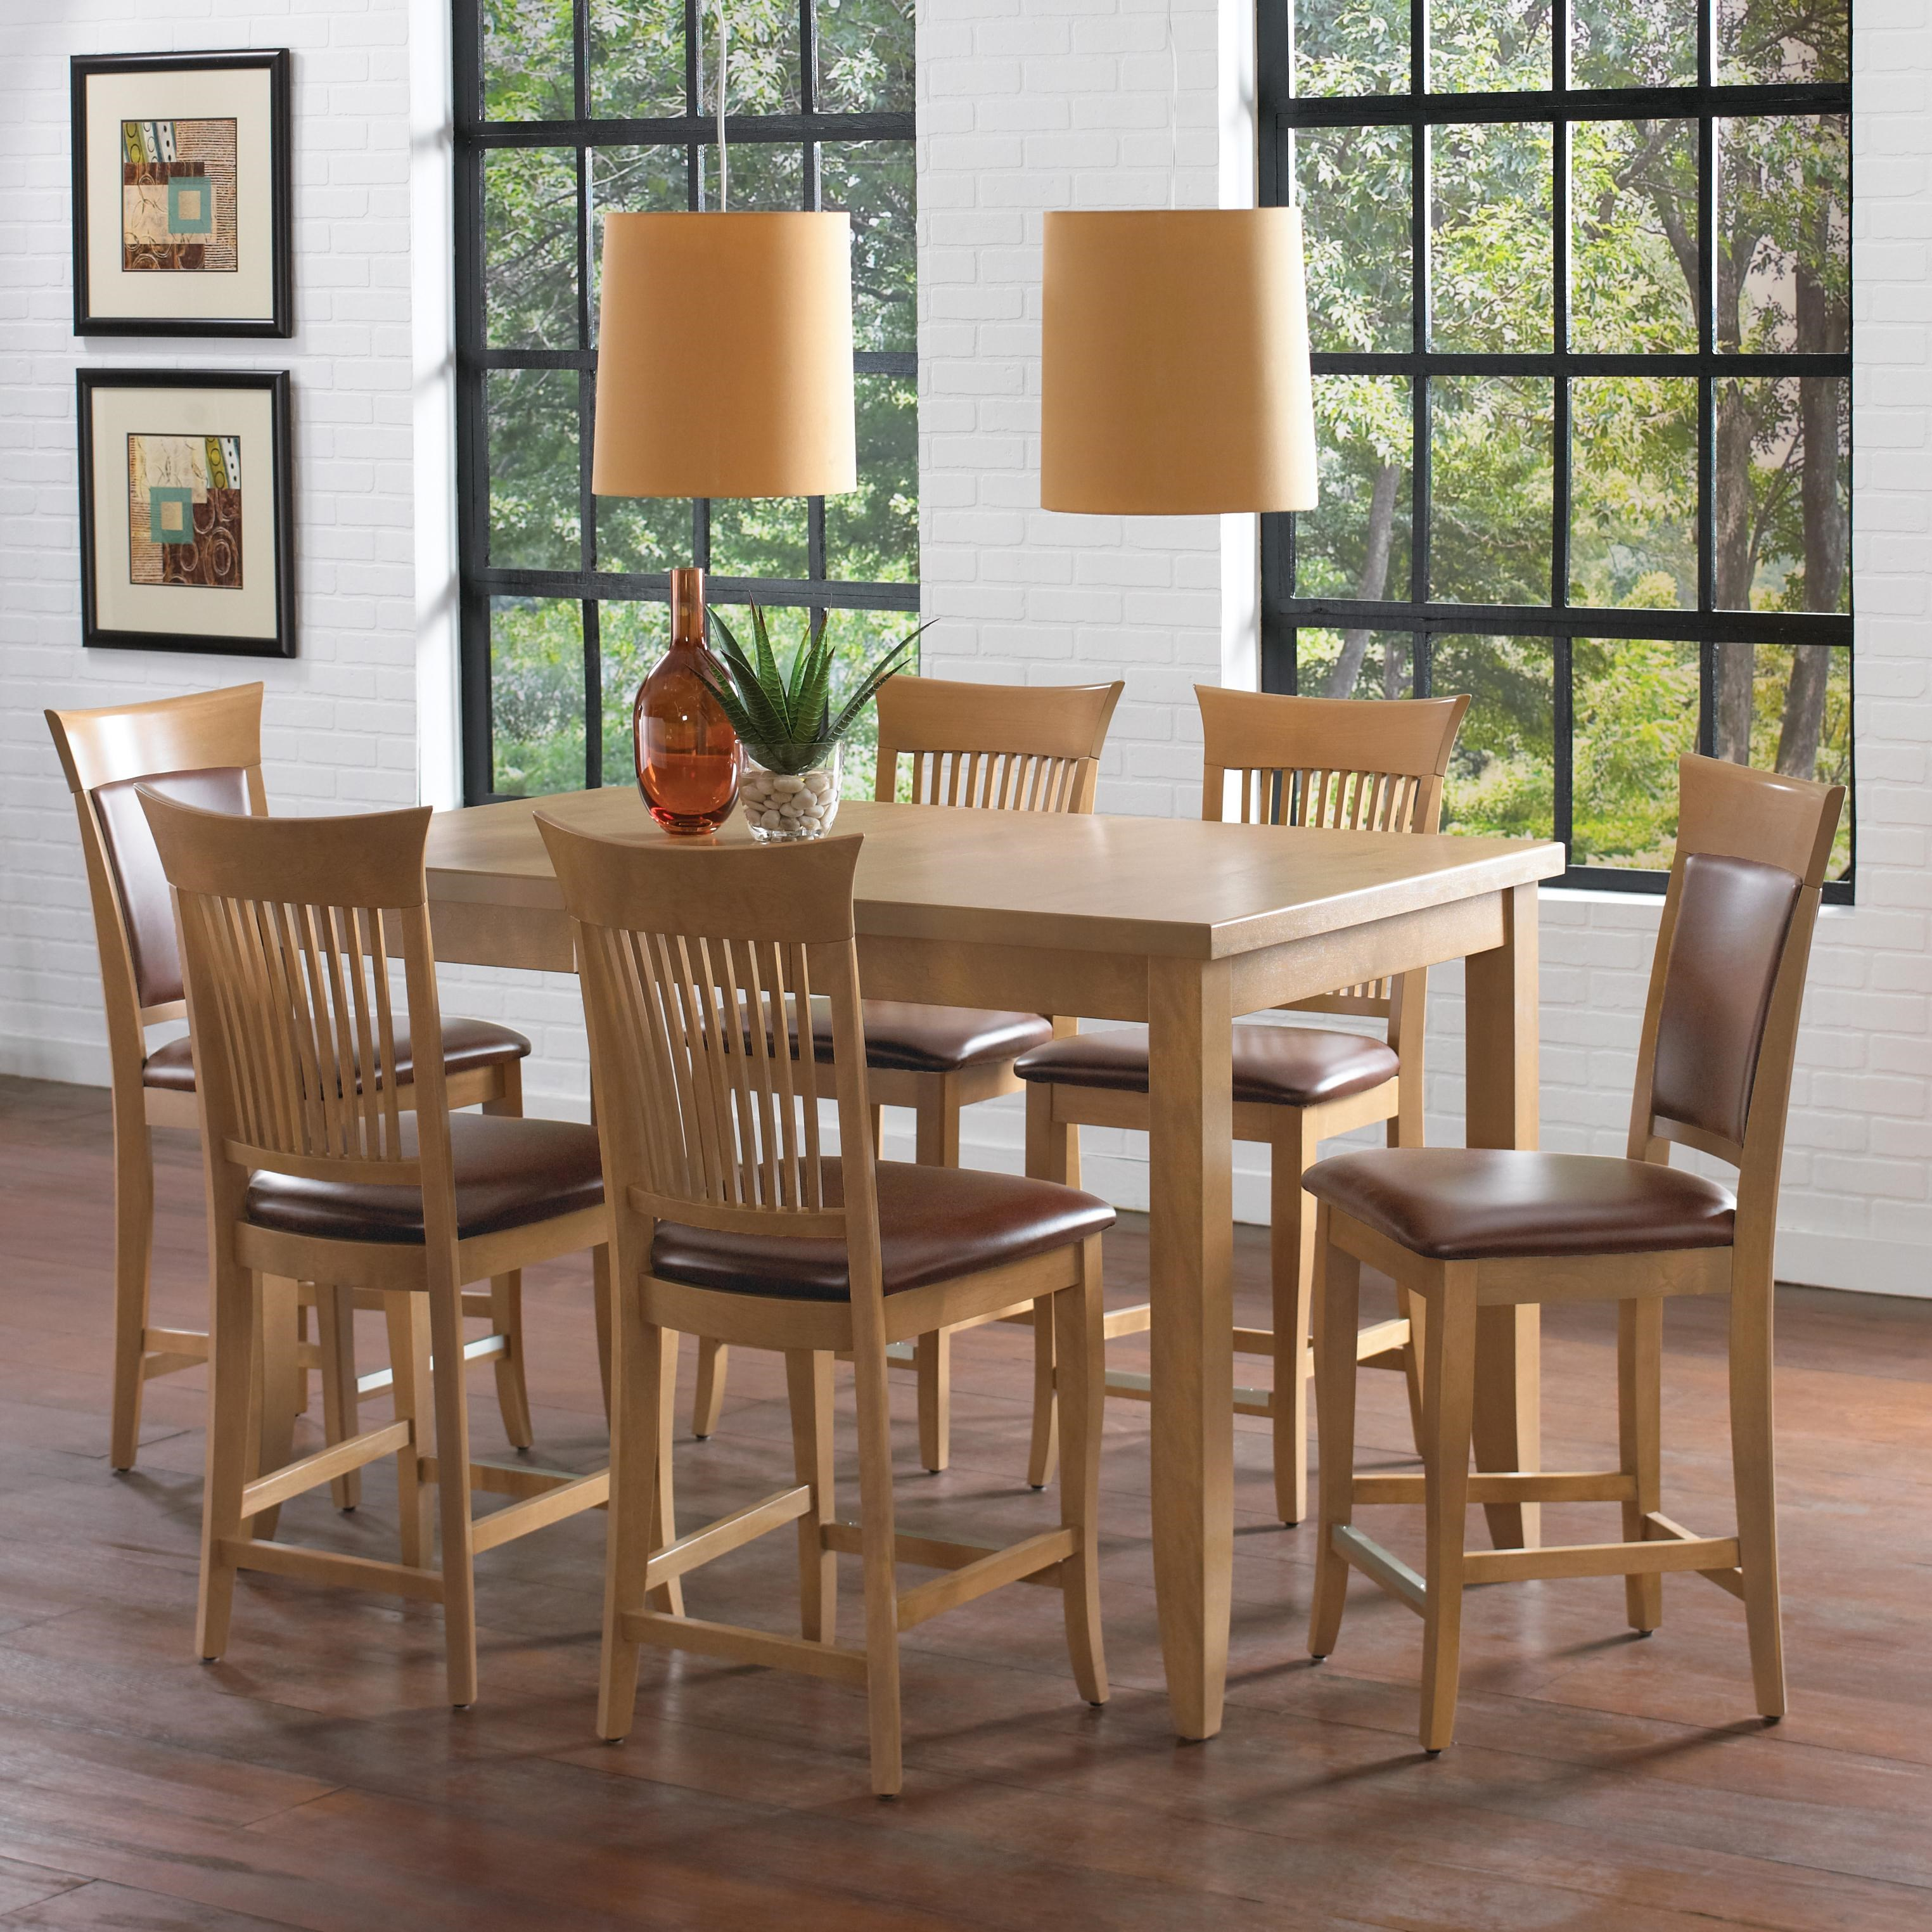 Canadel Custom Dining - High Dining Customizable Counter Height Table Set with Leaf & Canadel Custom Dining - High Dining Customizable Counter Height ...